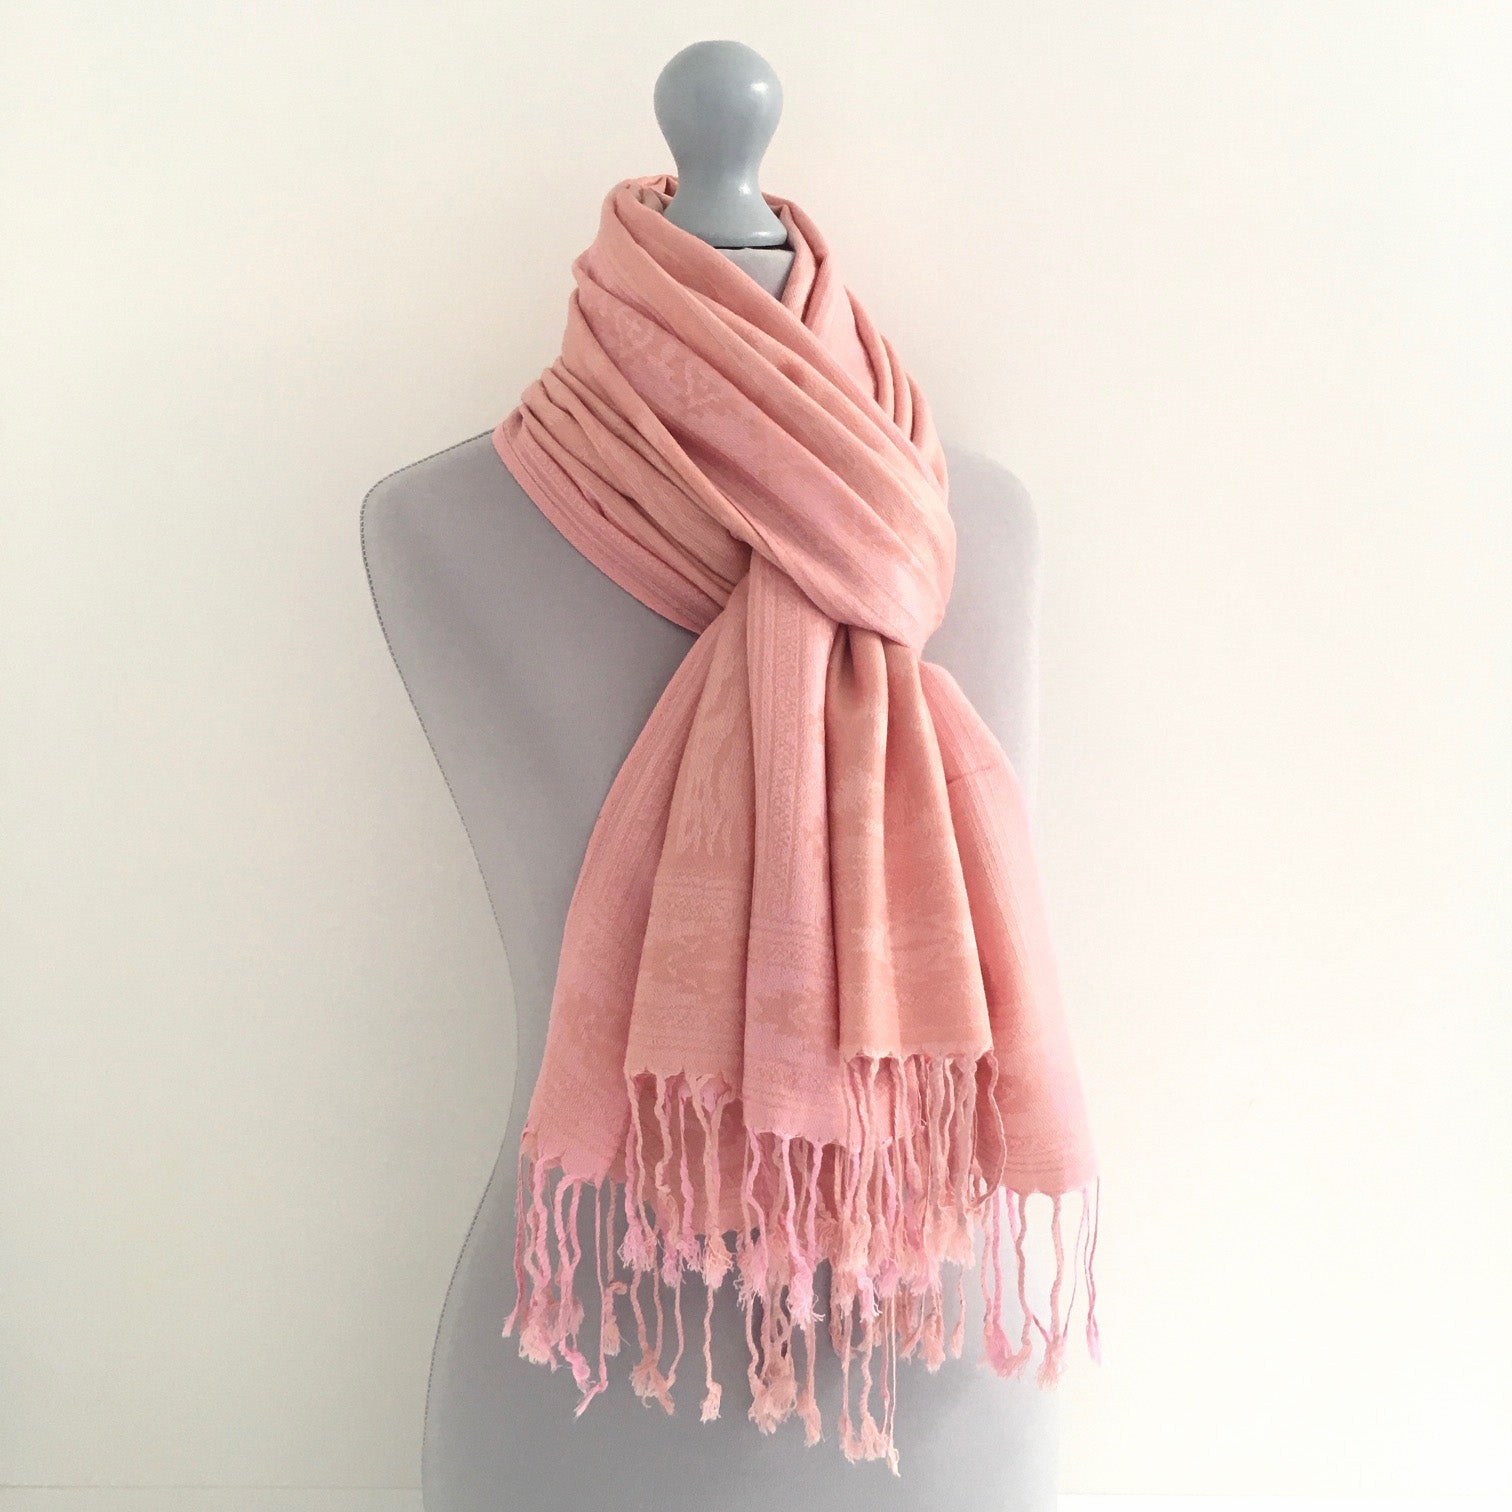 A-SHU PINK ANIMAL PRINT REVERSIBLE PASHMINA SHAWL SCARF - A-SHU.CO.UK